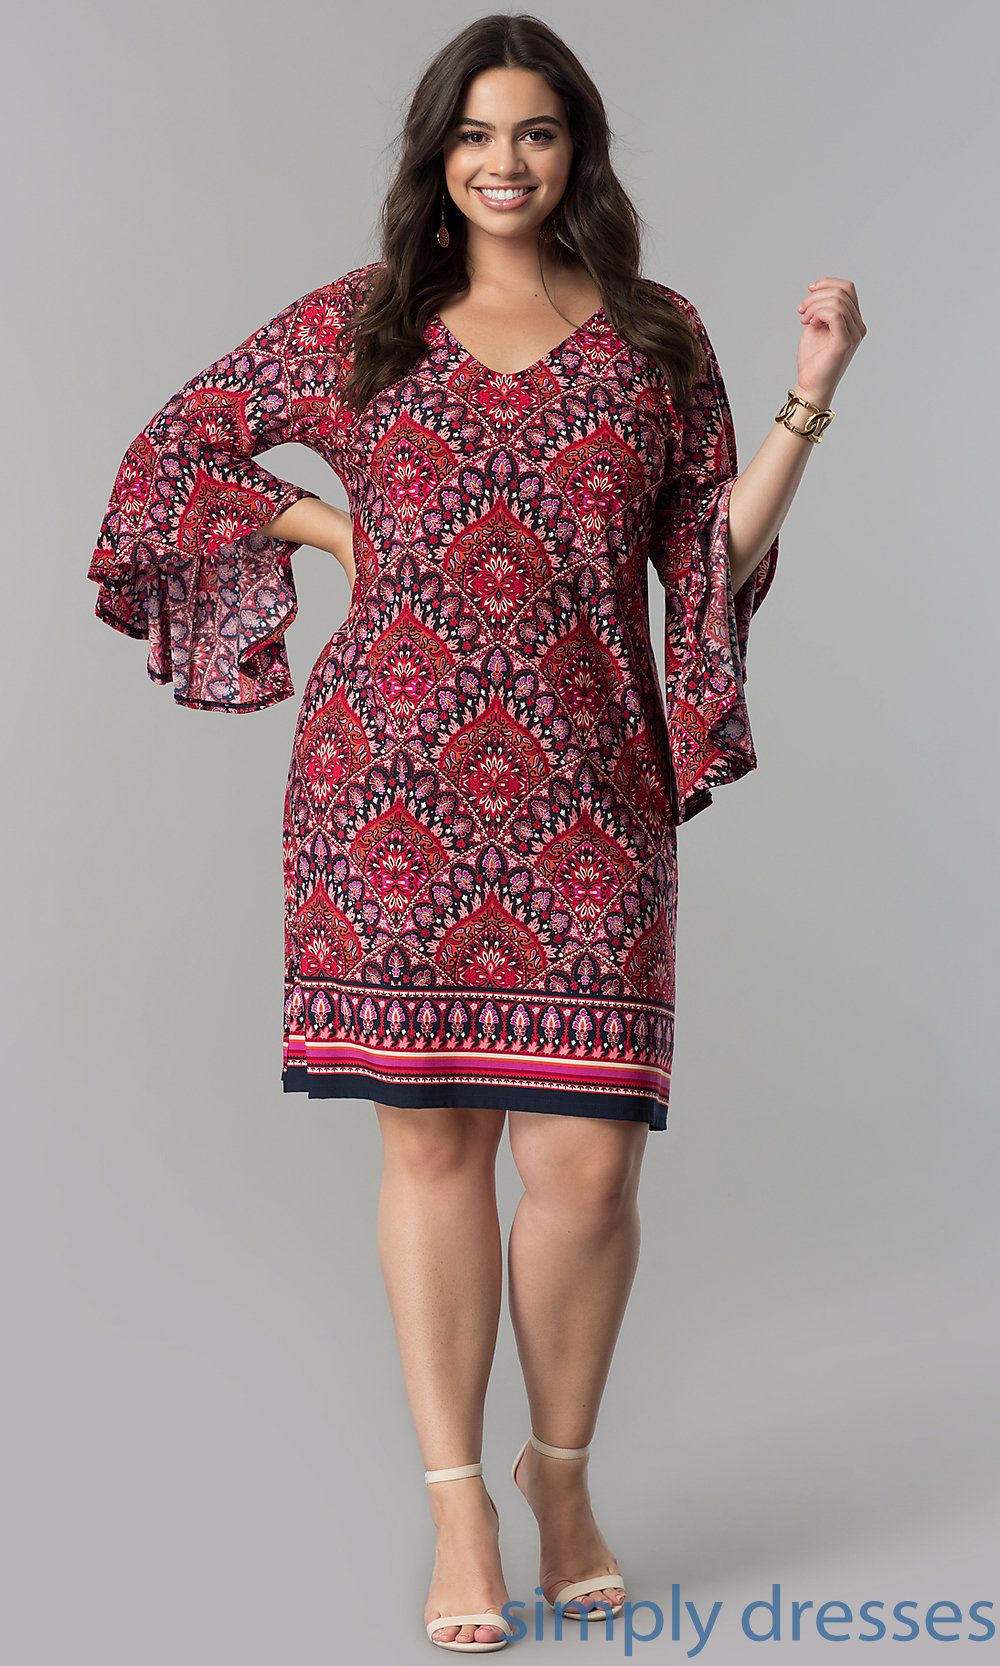 Short V Neck 3 4 Sleeve Casual Party Dress Casual Party Dresses Plus Size Dress Outfits Casual Cocktail Dress [ 1666 x 1000 Pixel ]